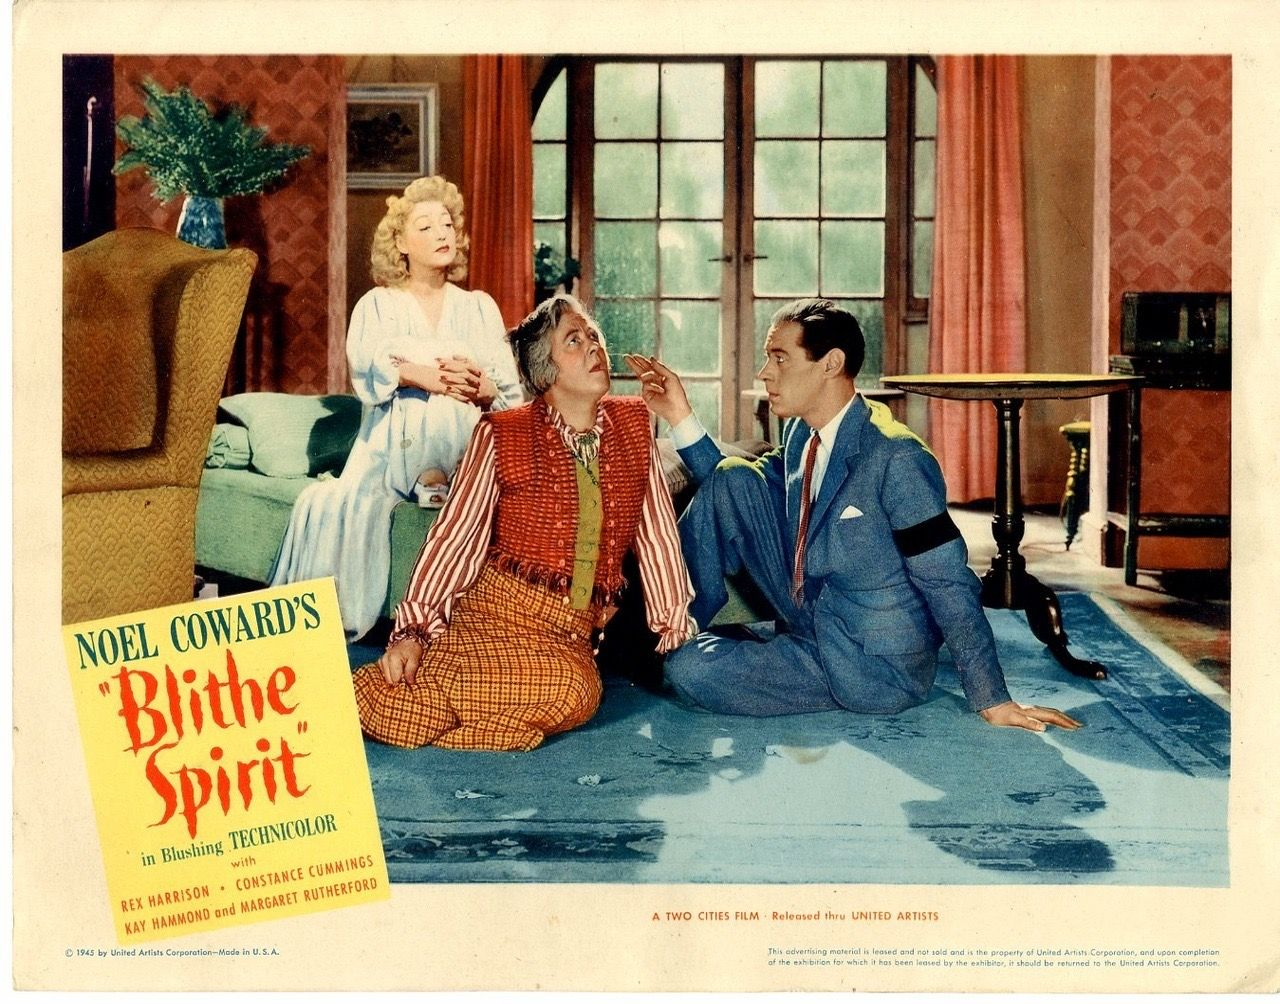 Rex Harrison, Margaret Rutherford and Kay Hammond in Blithe Spirit ...